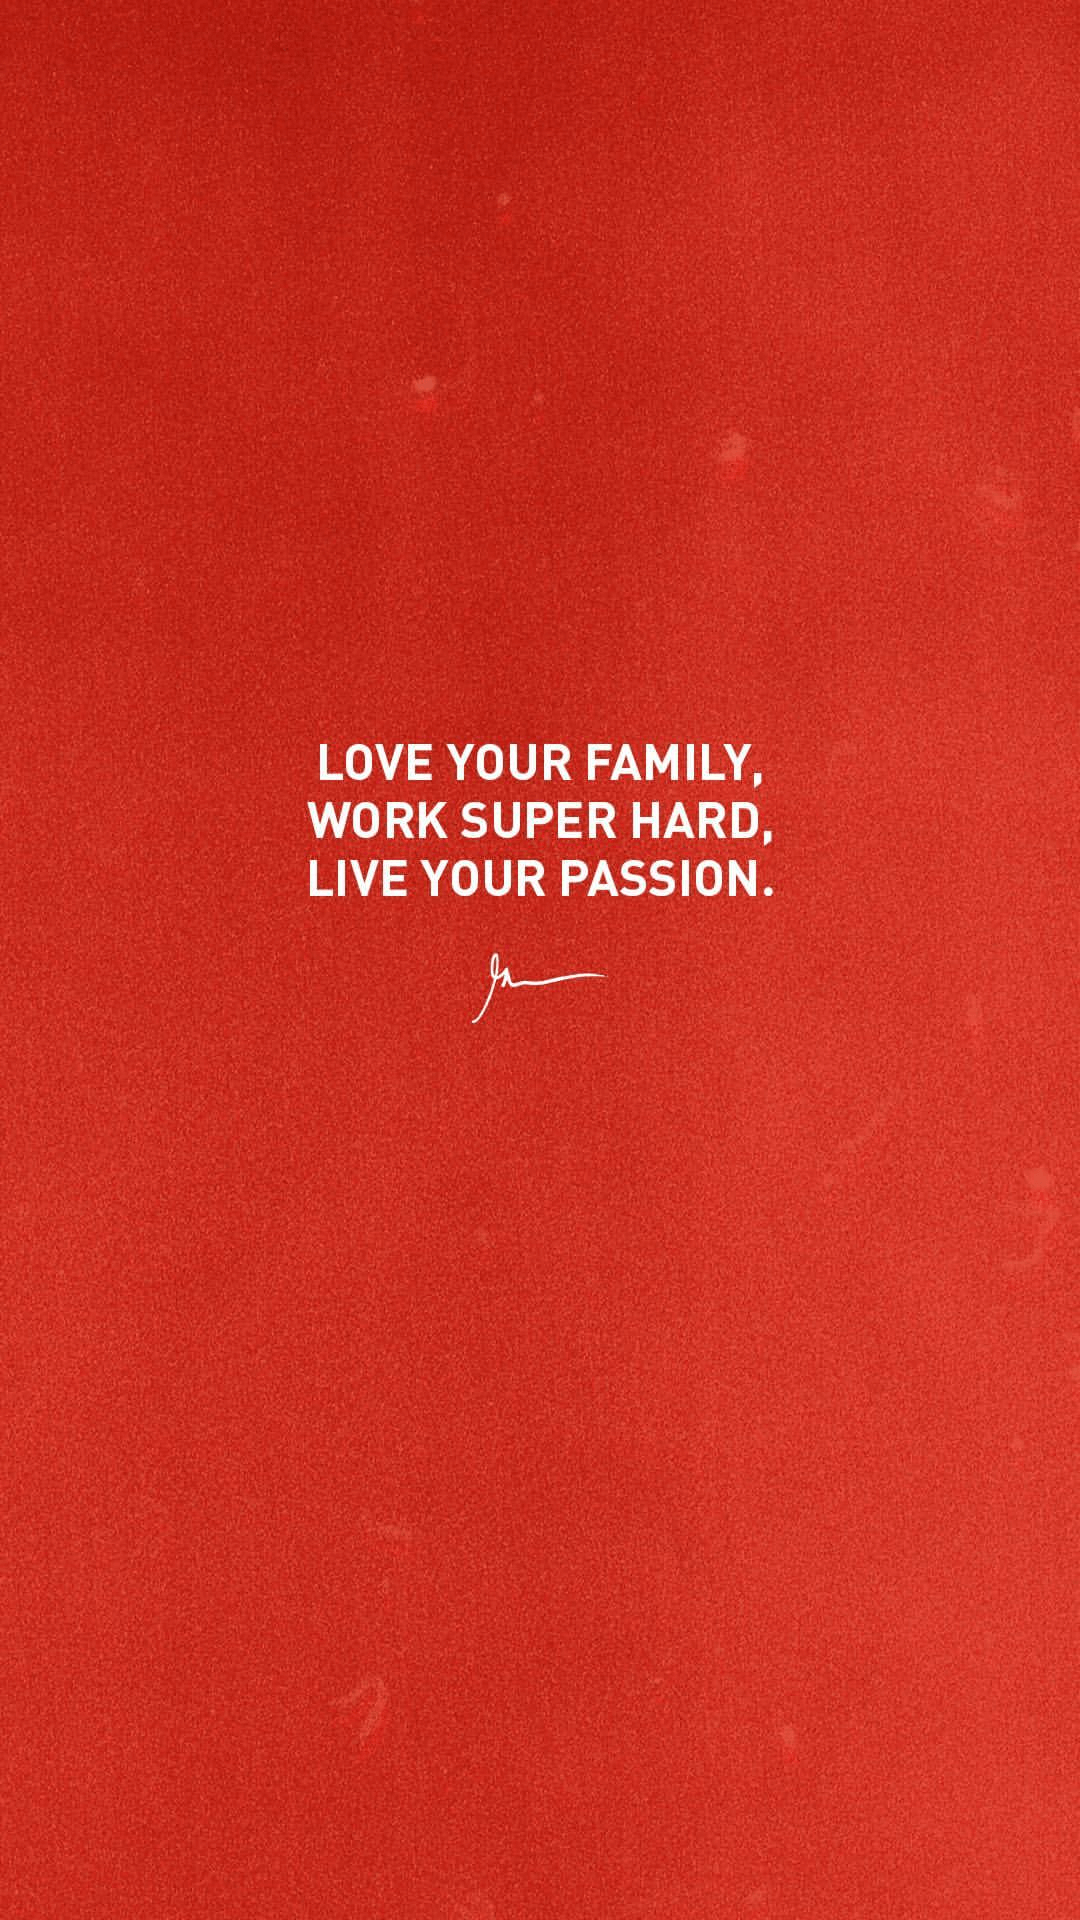 Love Your Family, Work Super Hard, Live Your Passion